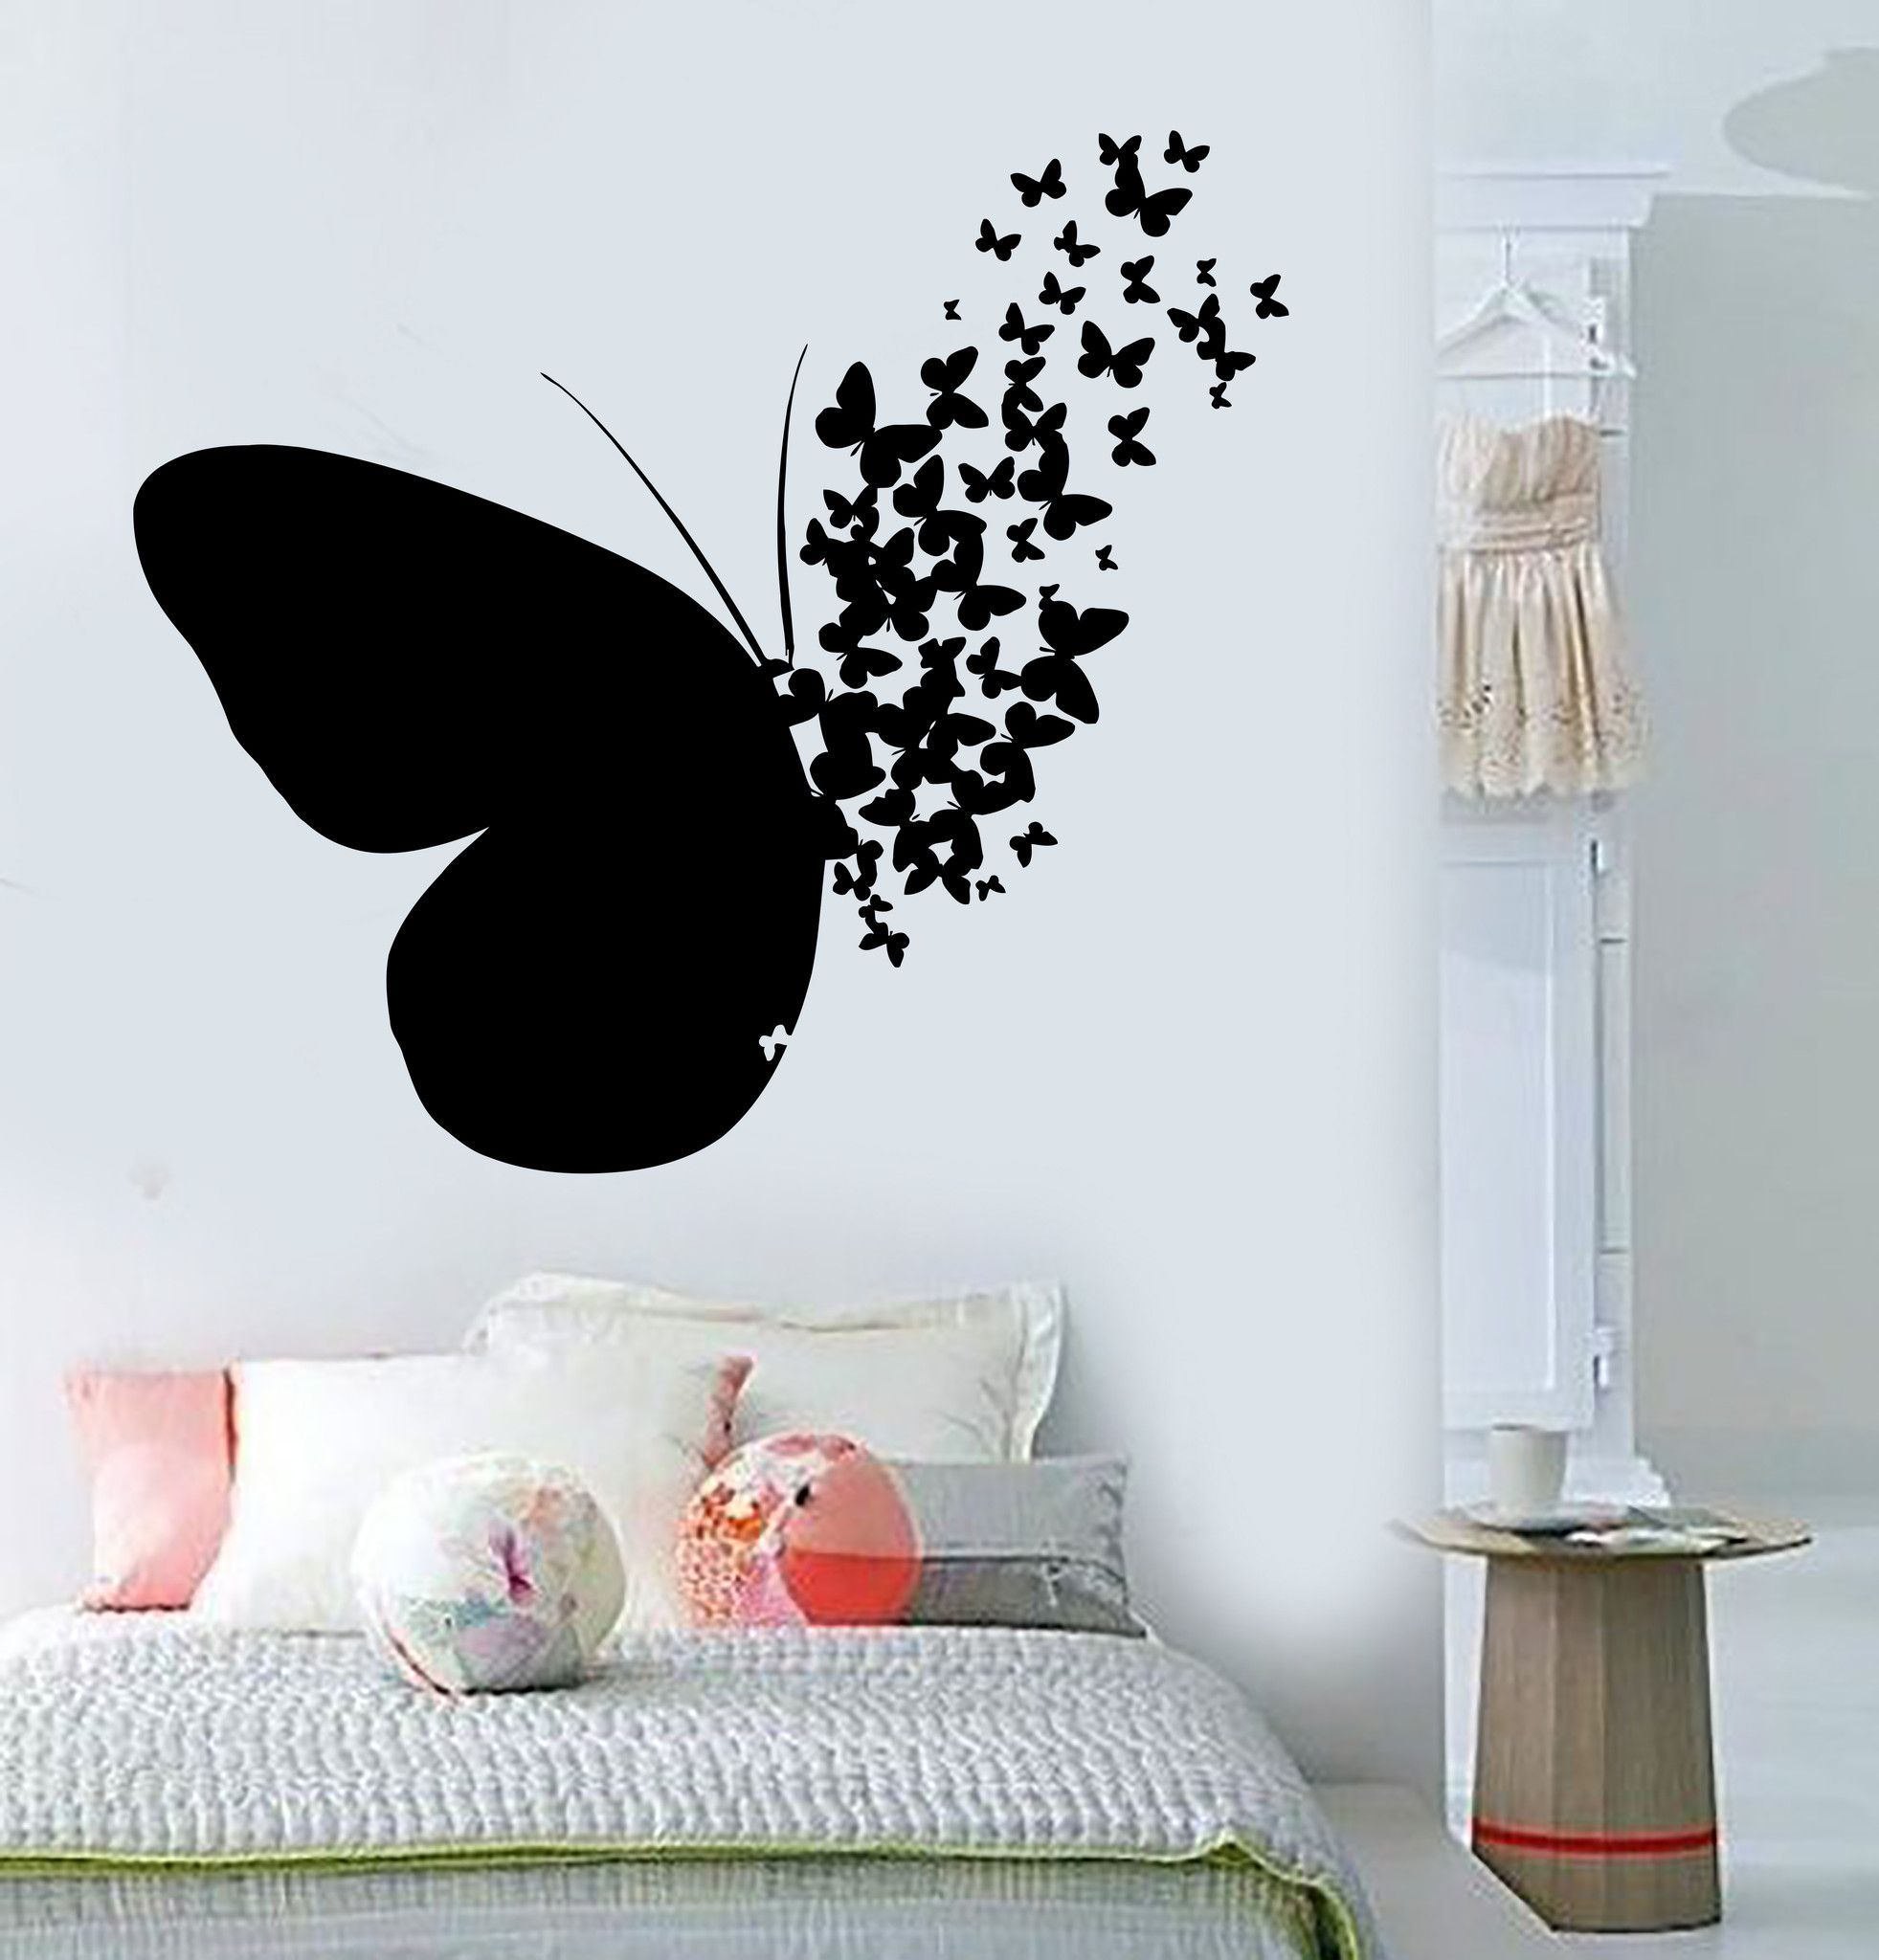 Vinyl Wall Decal Butterfly Home Room Decoration Mural Stickers - Vinyl wall decals butterflies